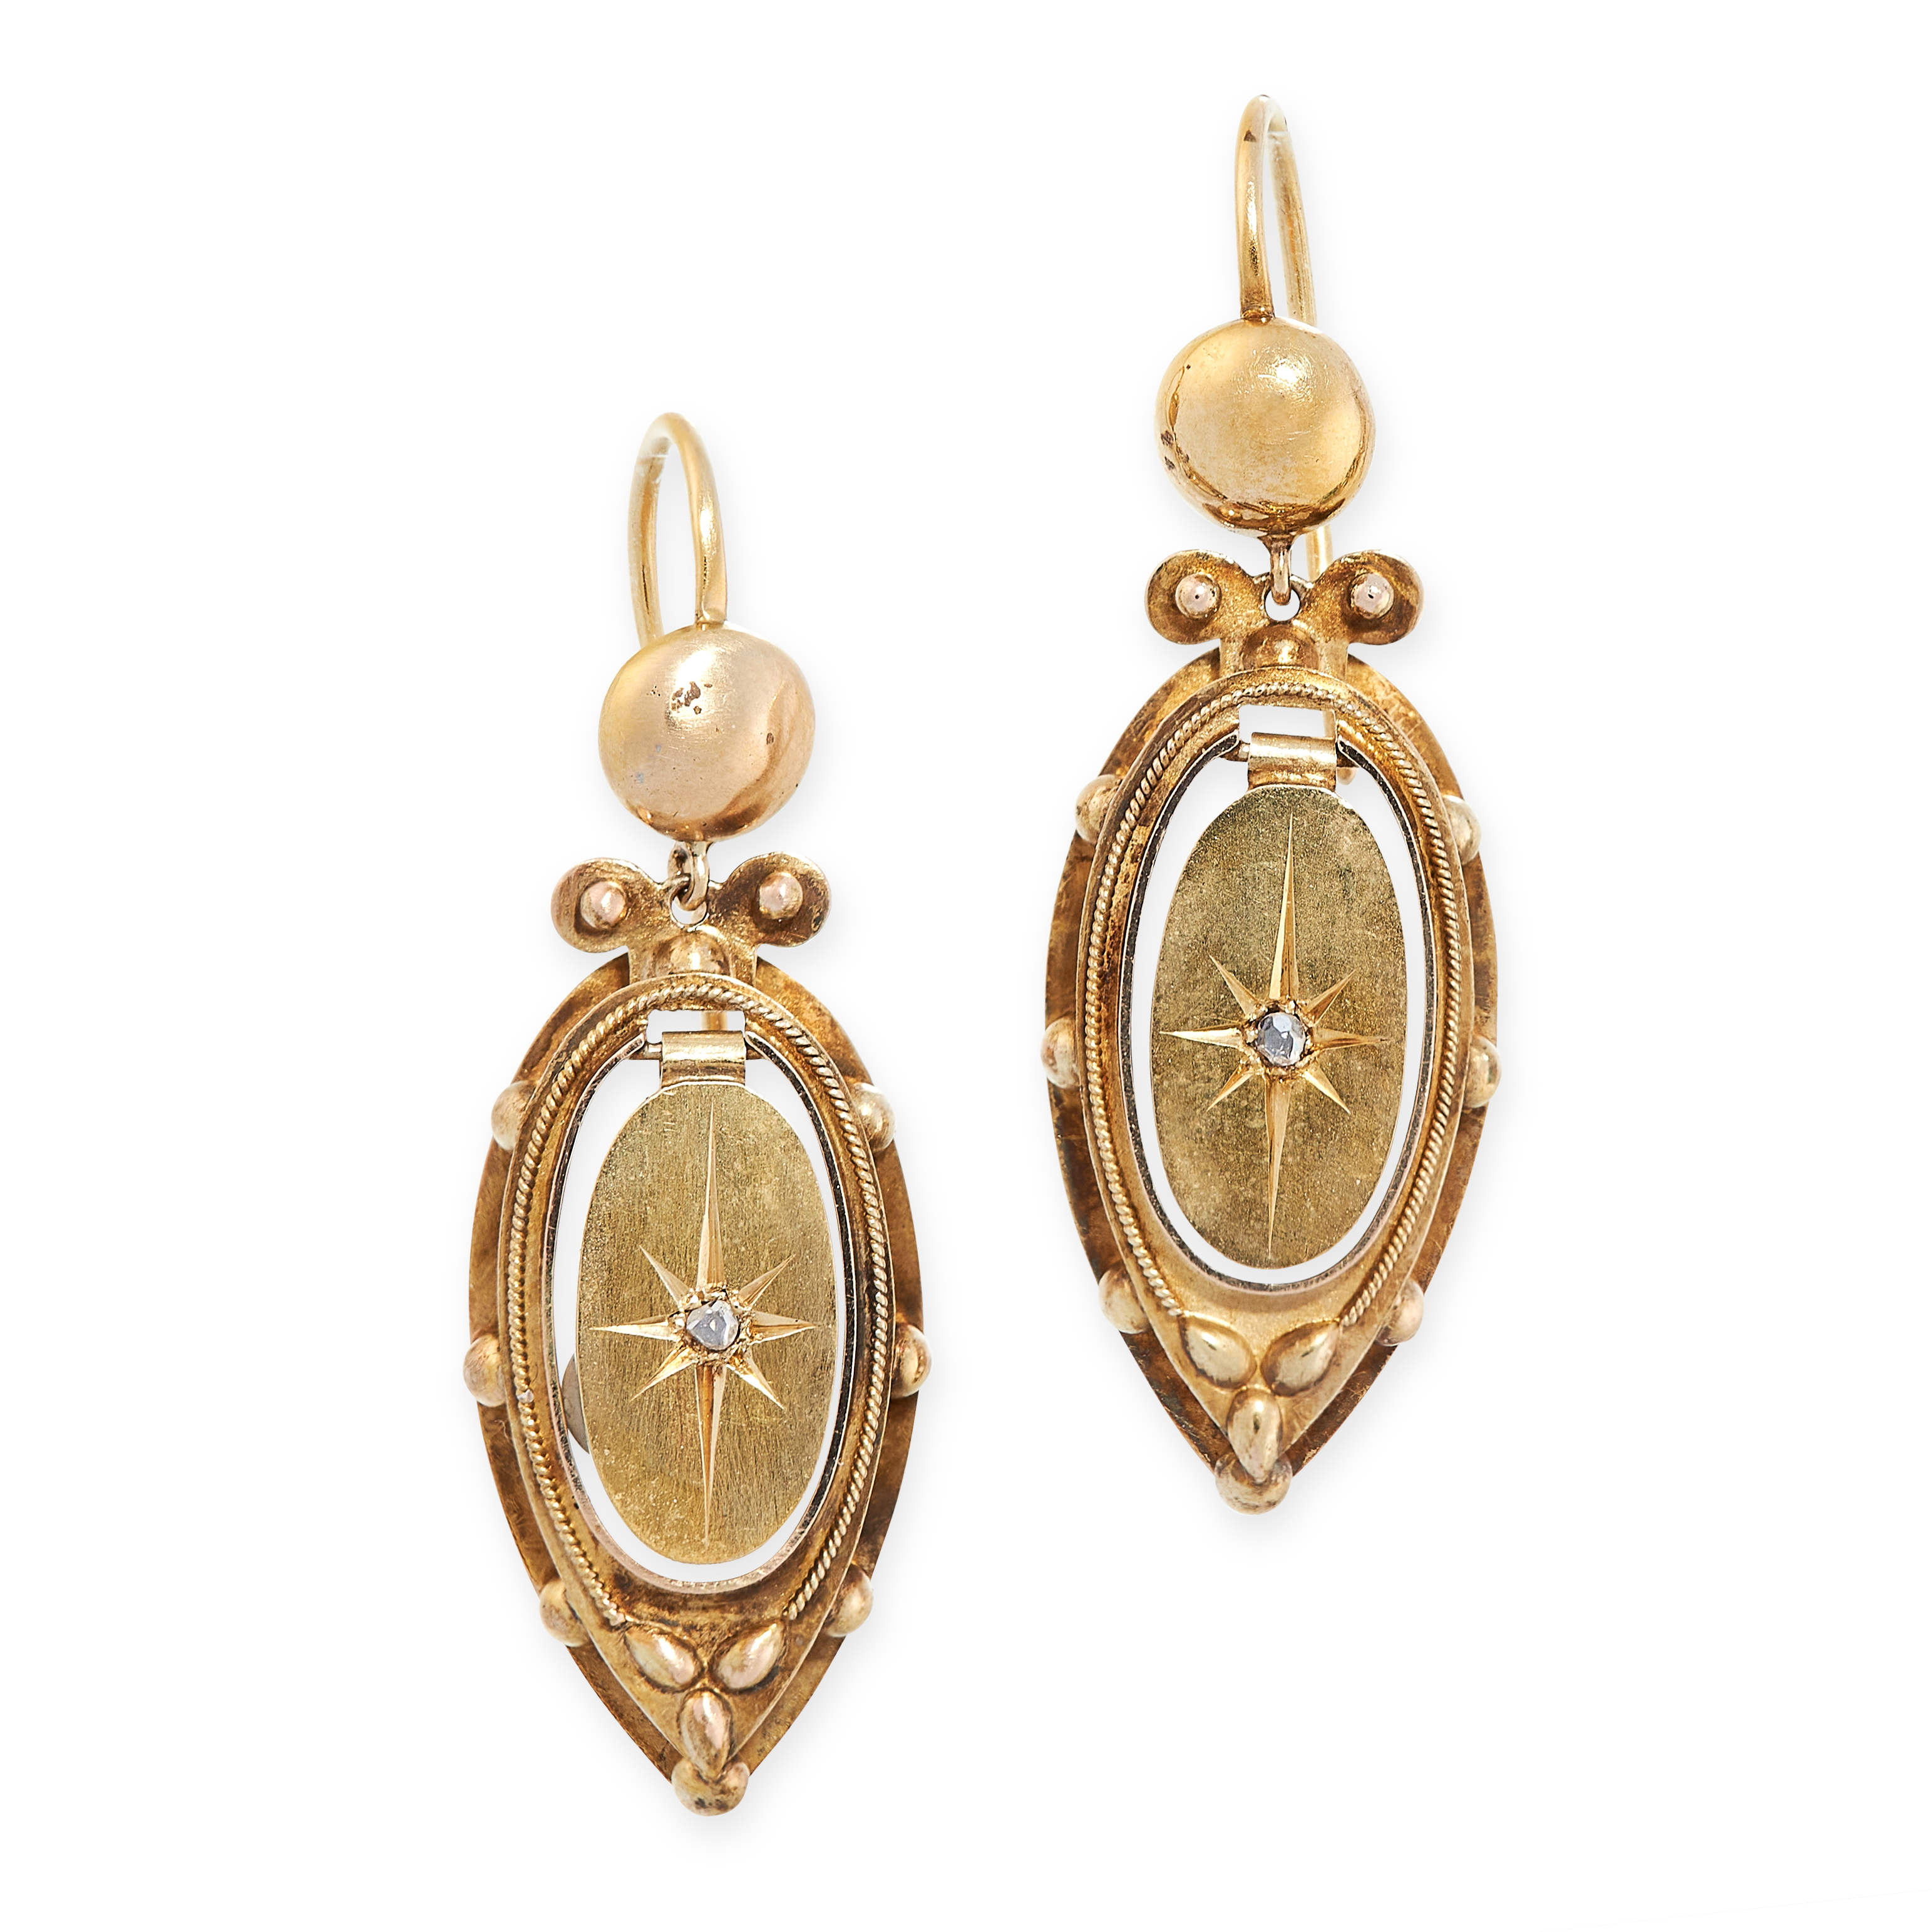 A PAIR OF ANTIQUE DIAMOND EARRINGS, 19TH CENTURY in yellow gold, in the Etruscan revival manner, the